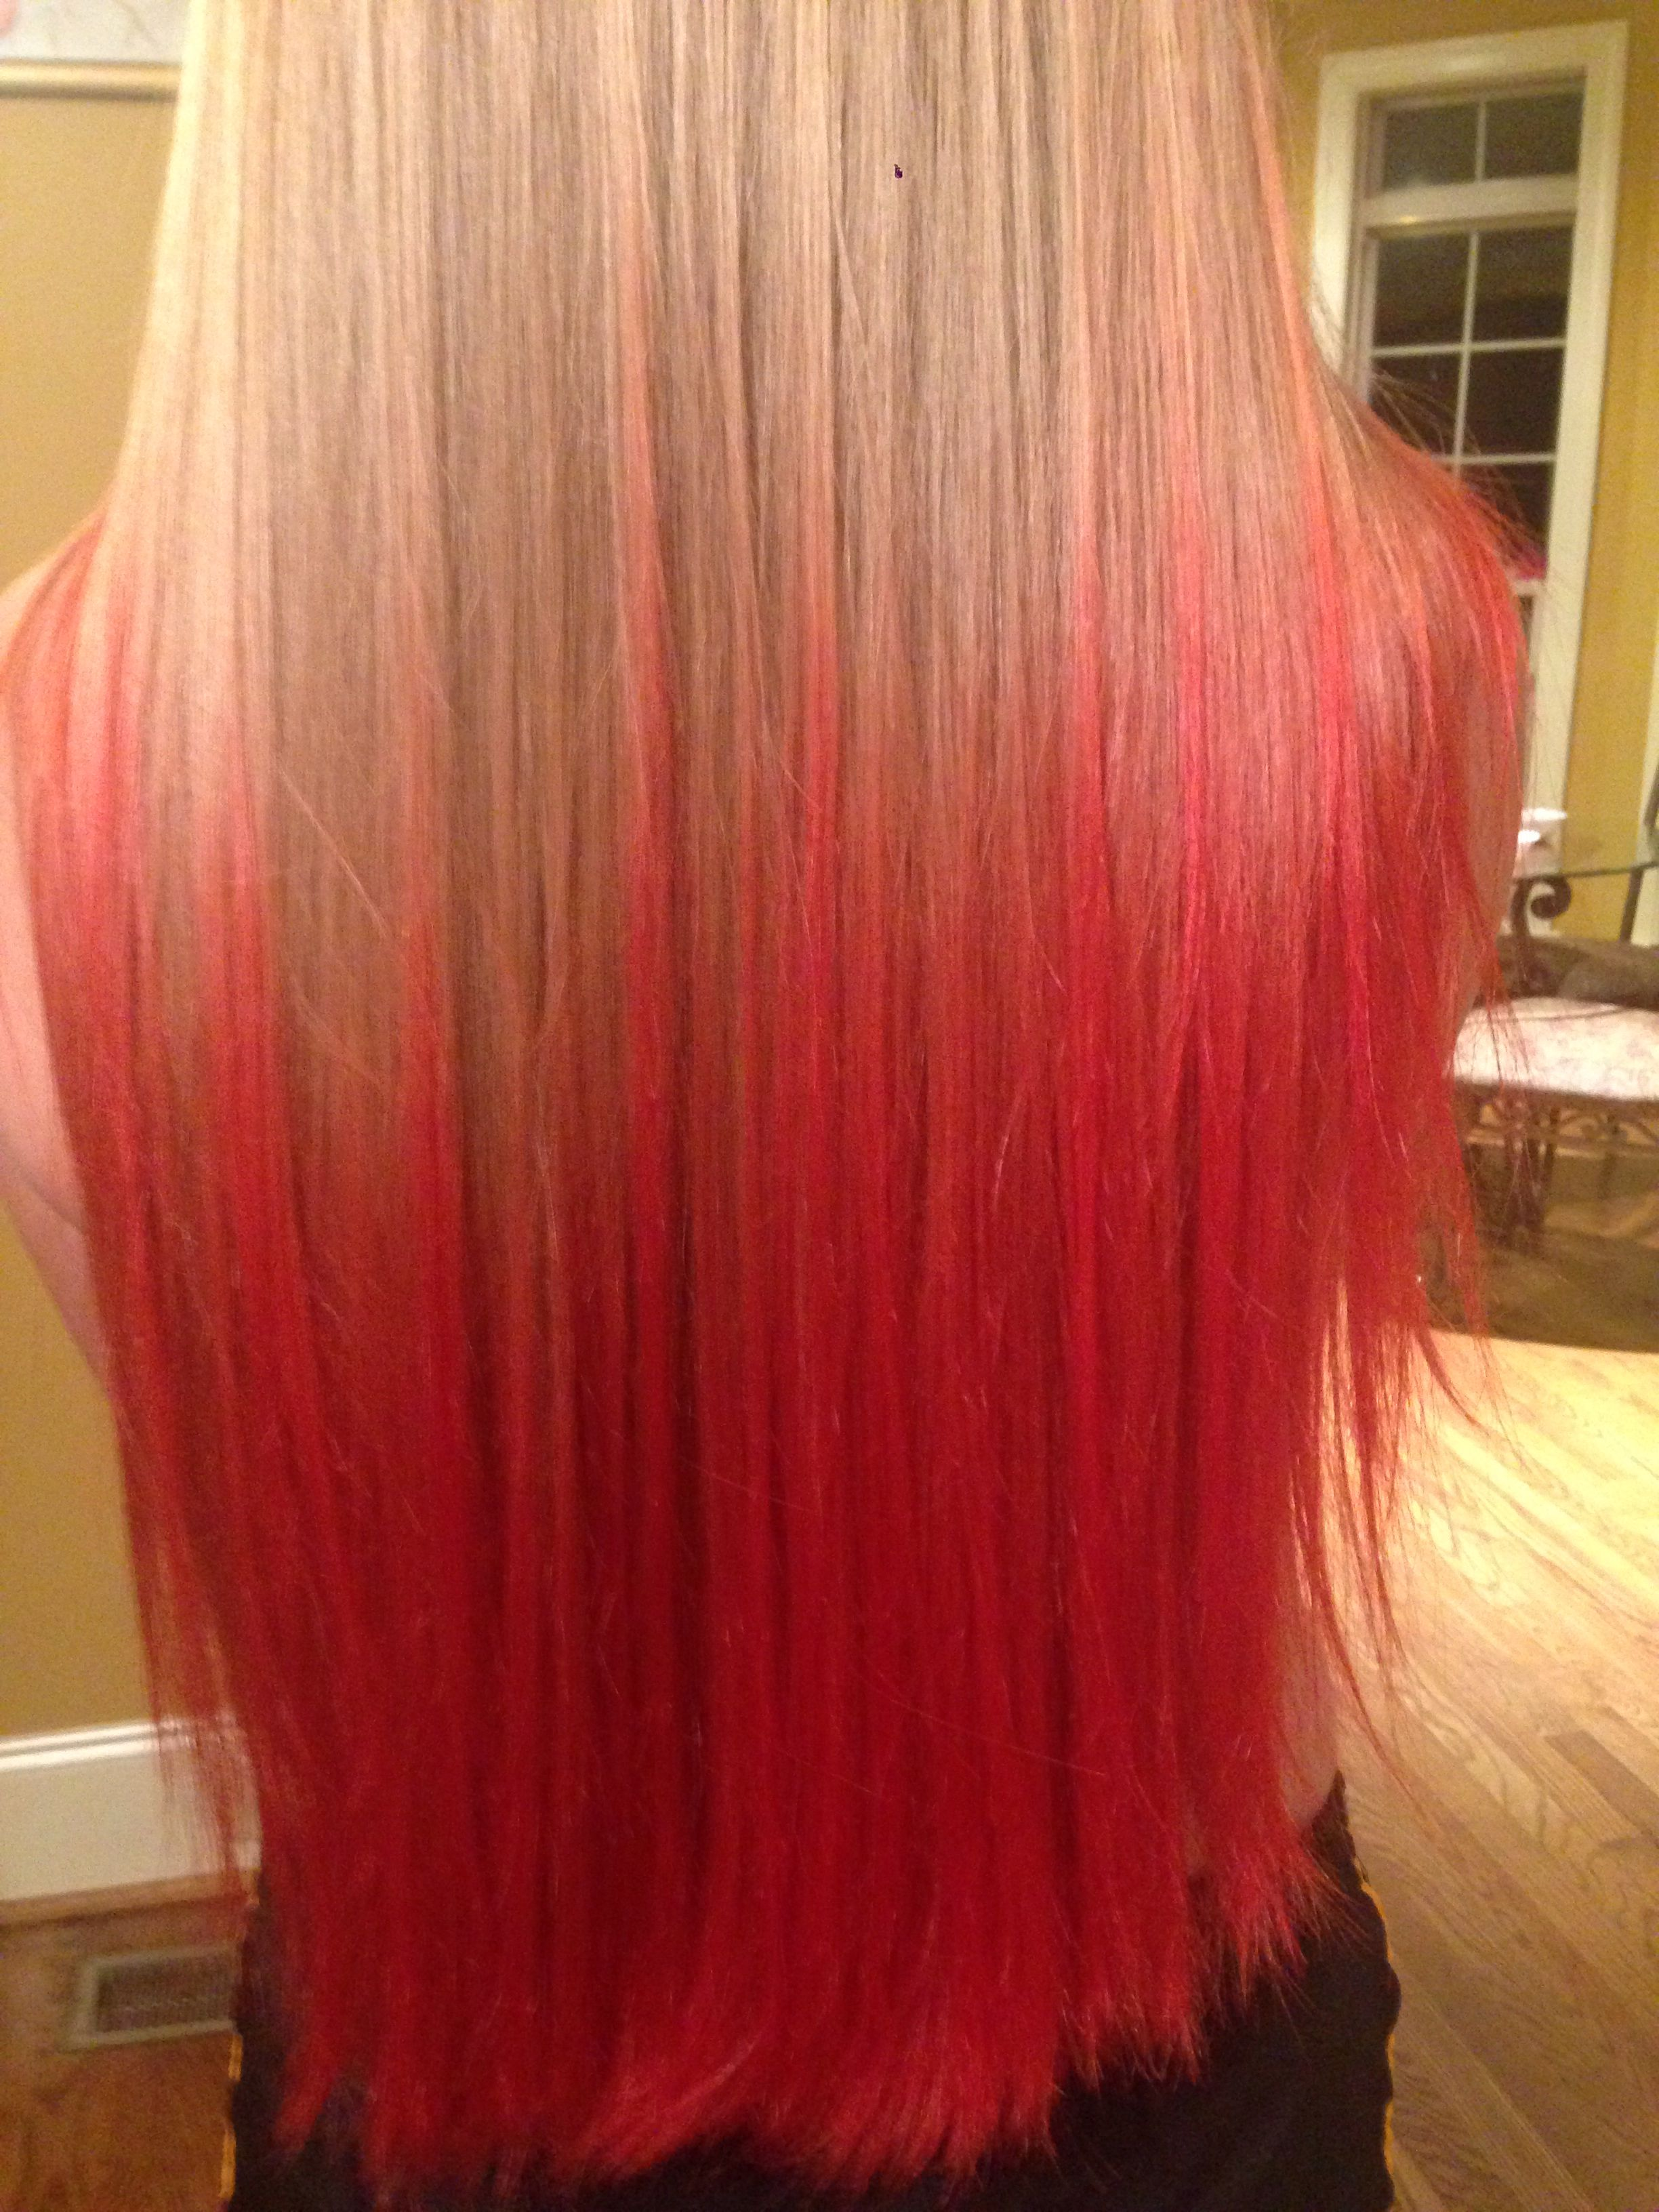 Kool Aid Dip Dyed Hair Cherry Strawberry And Pink Lemonade Kool Aid Hair Hair Dye Tips Dip Dye Hair